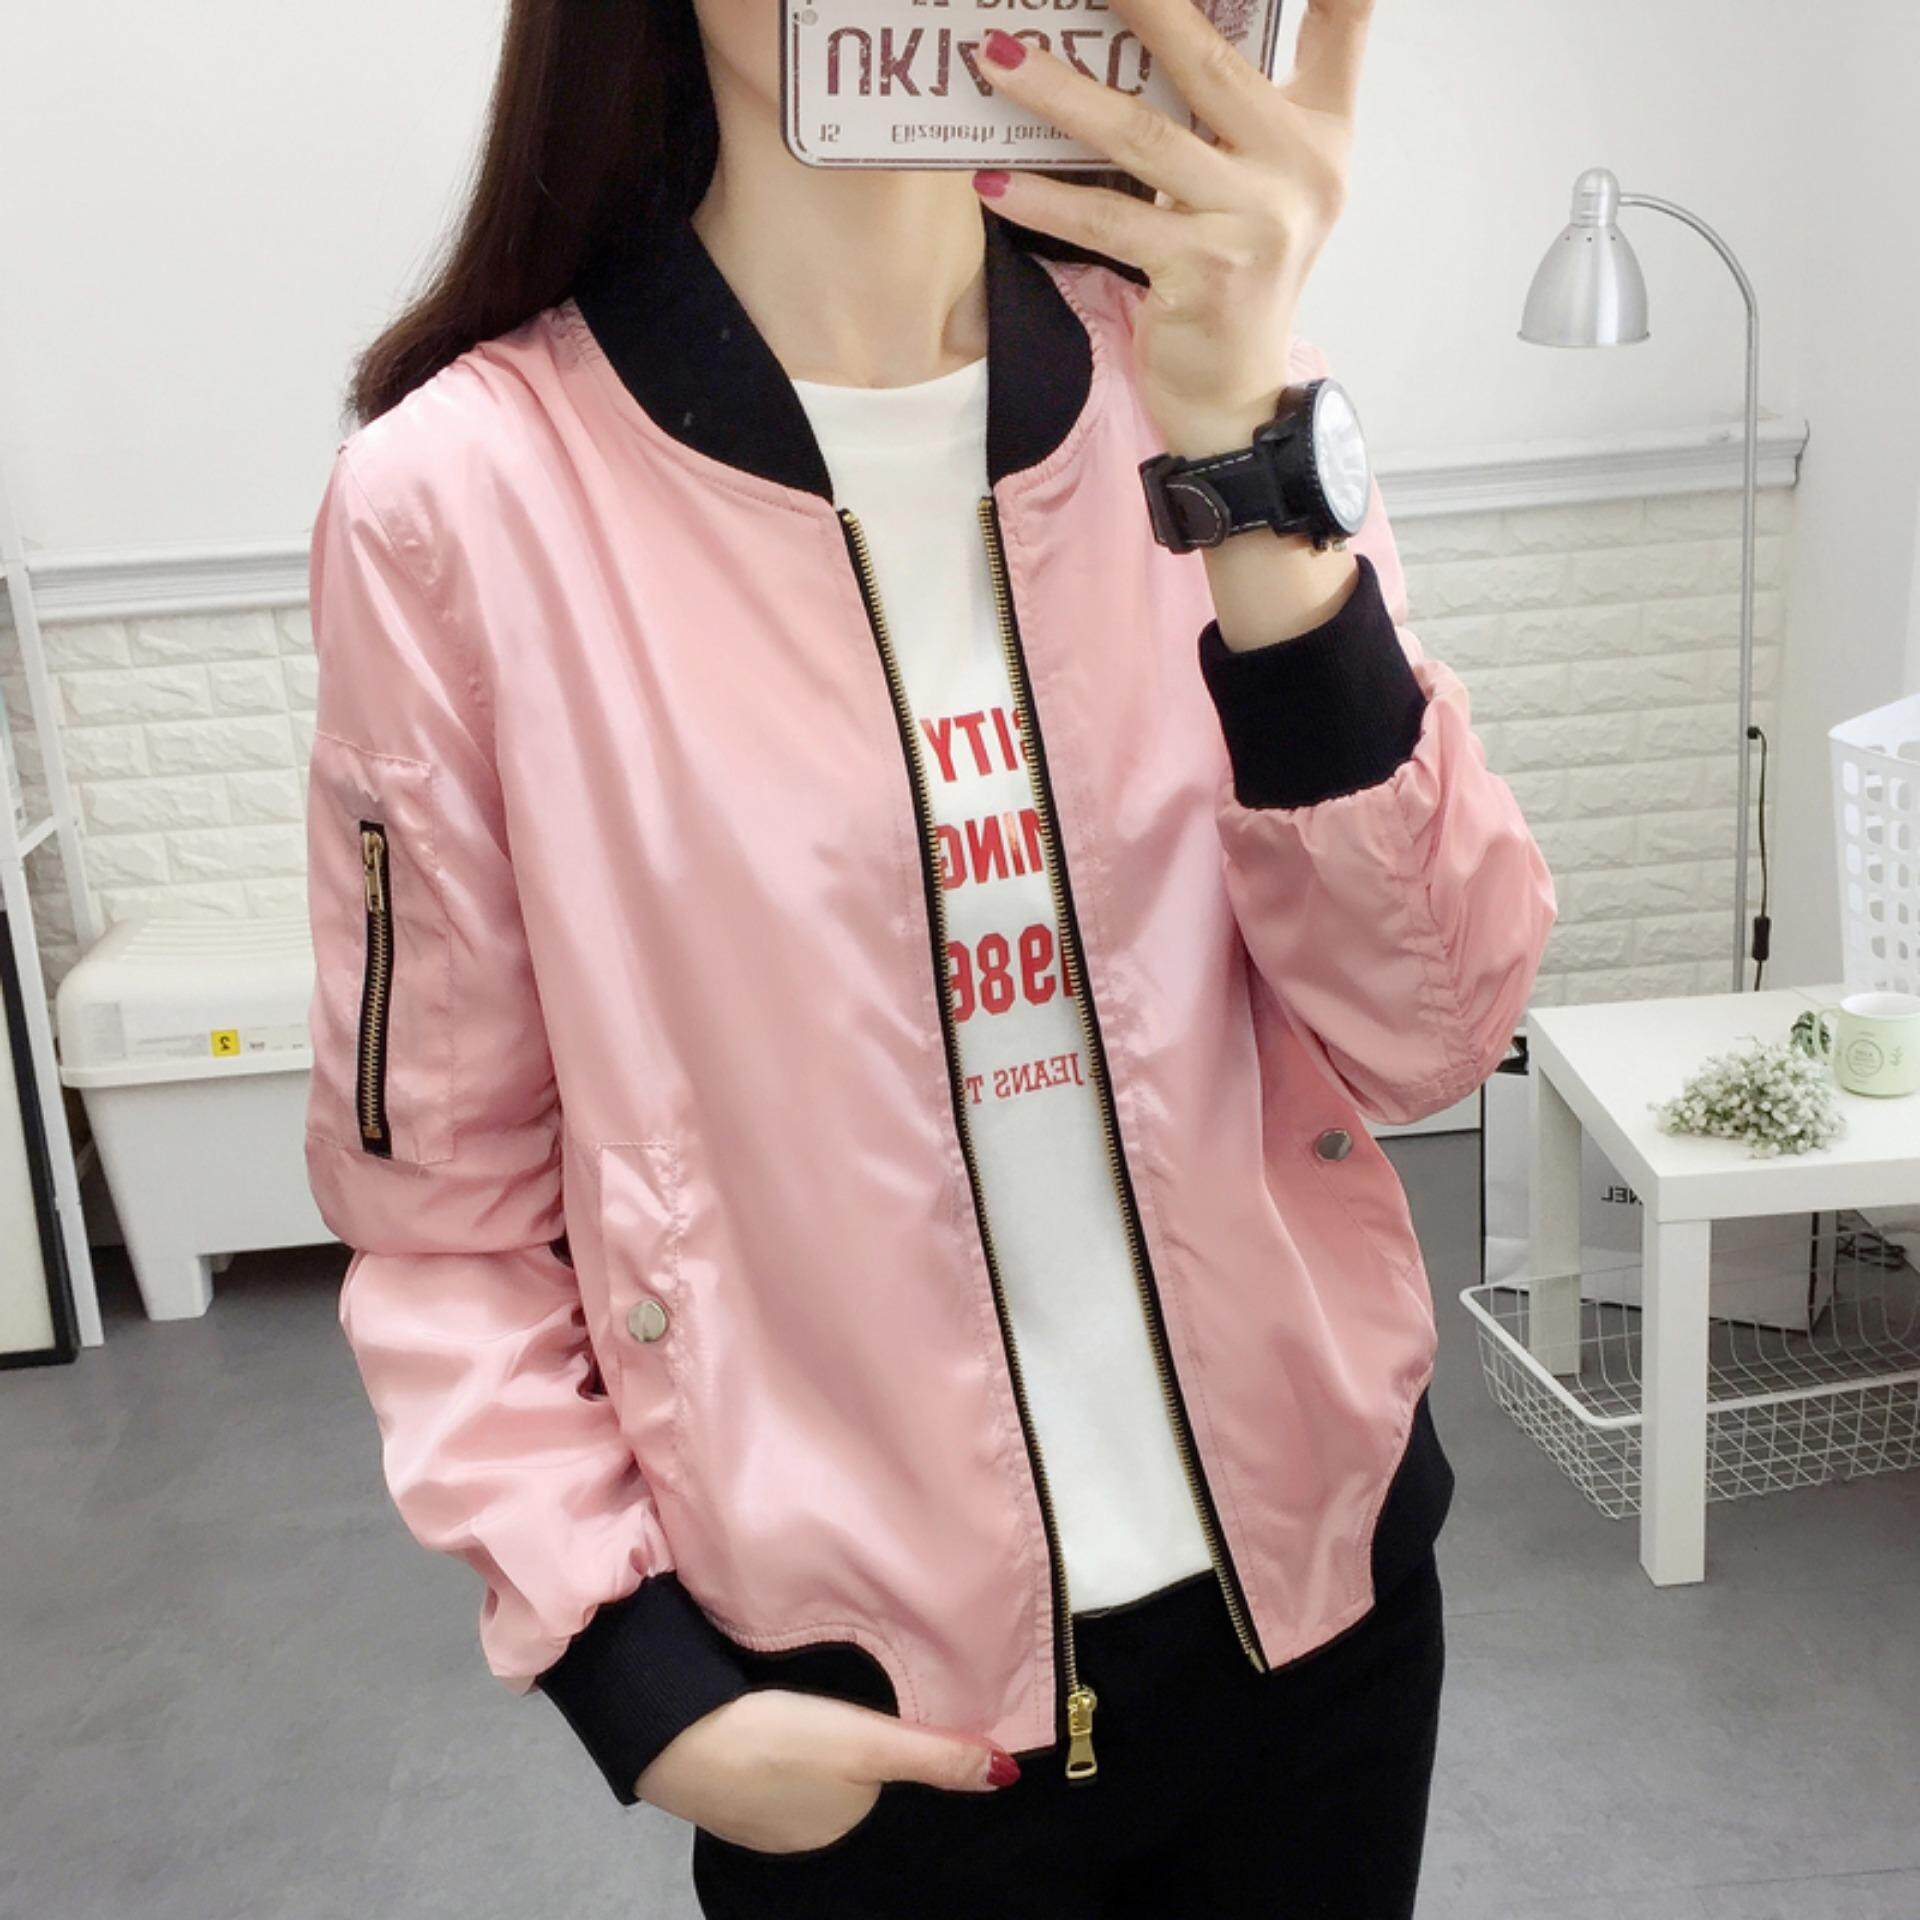 Clothing Autumn Women Jacket All-Match Female Casual Baseball Jacket By Love Mmbb Shop.